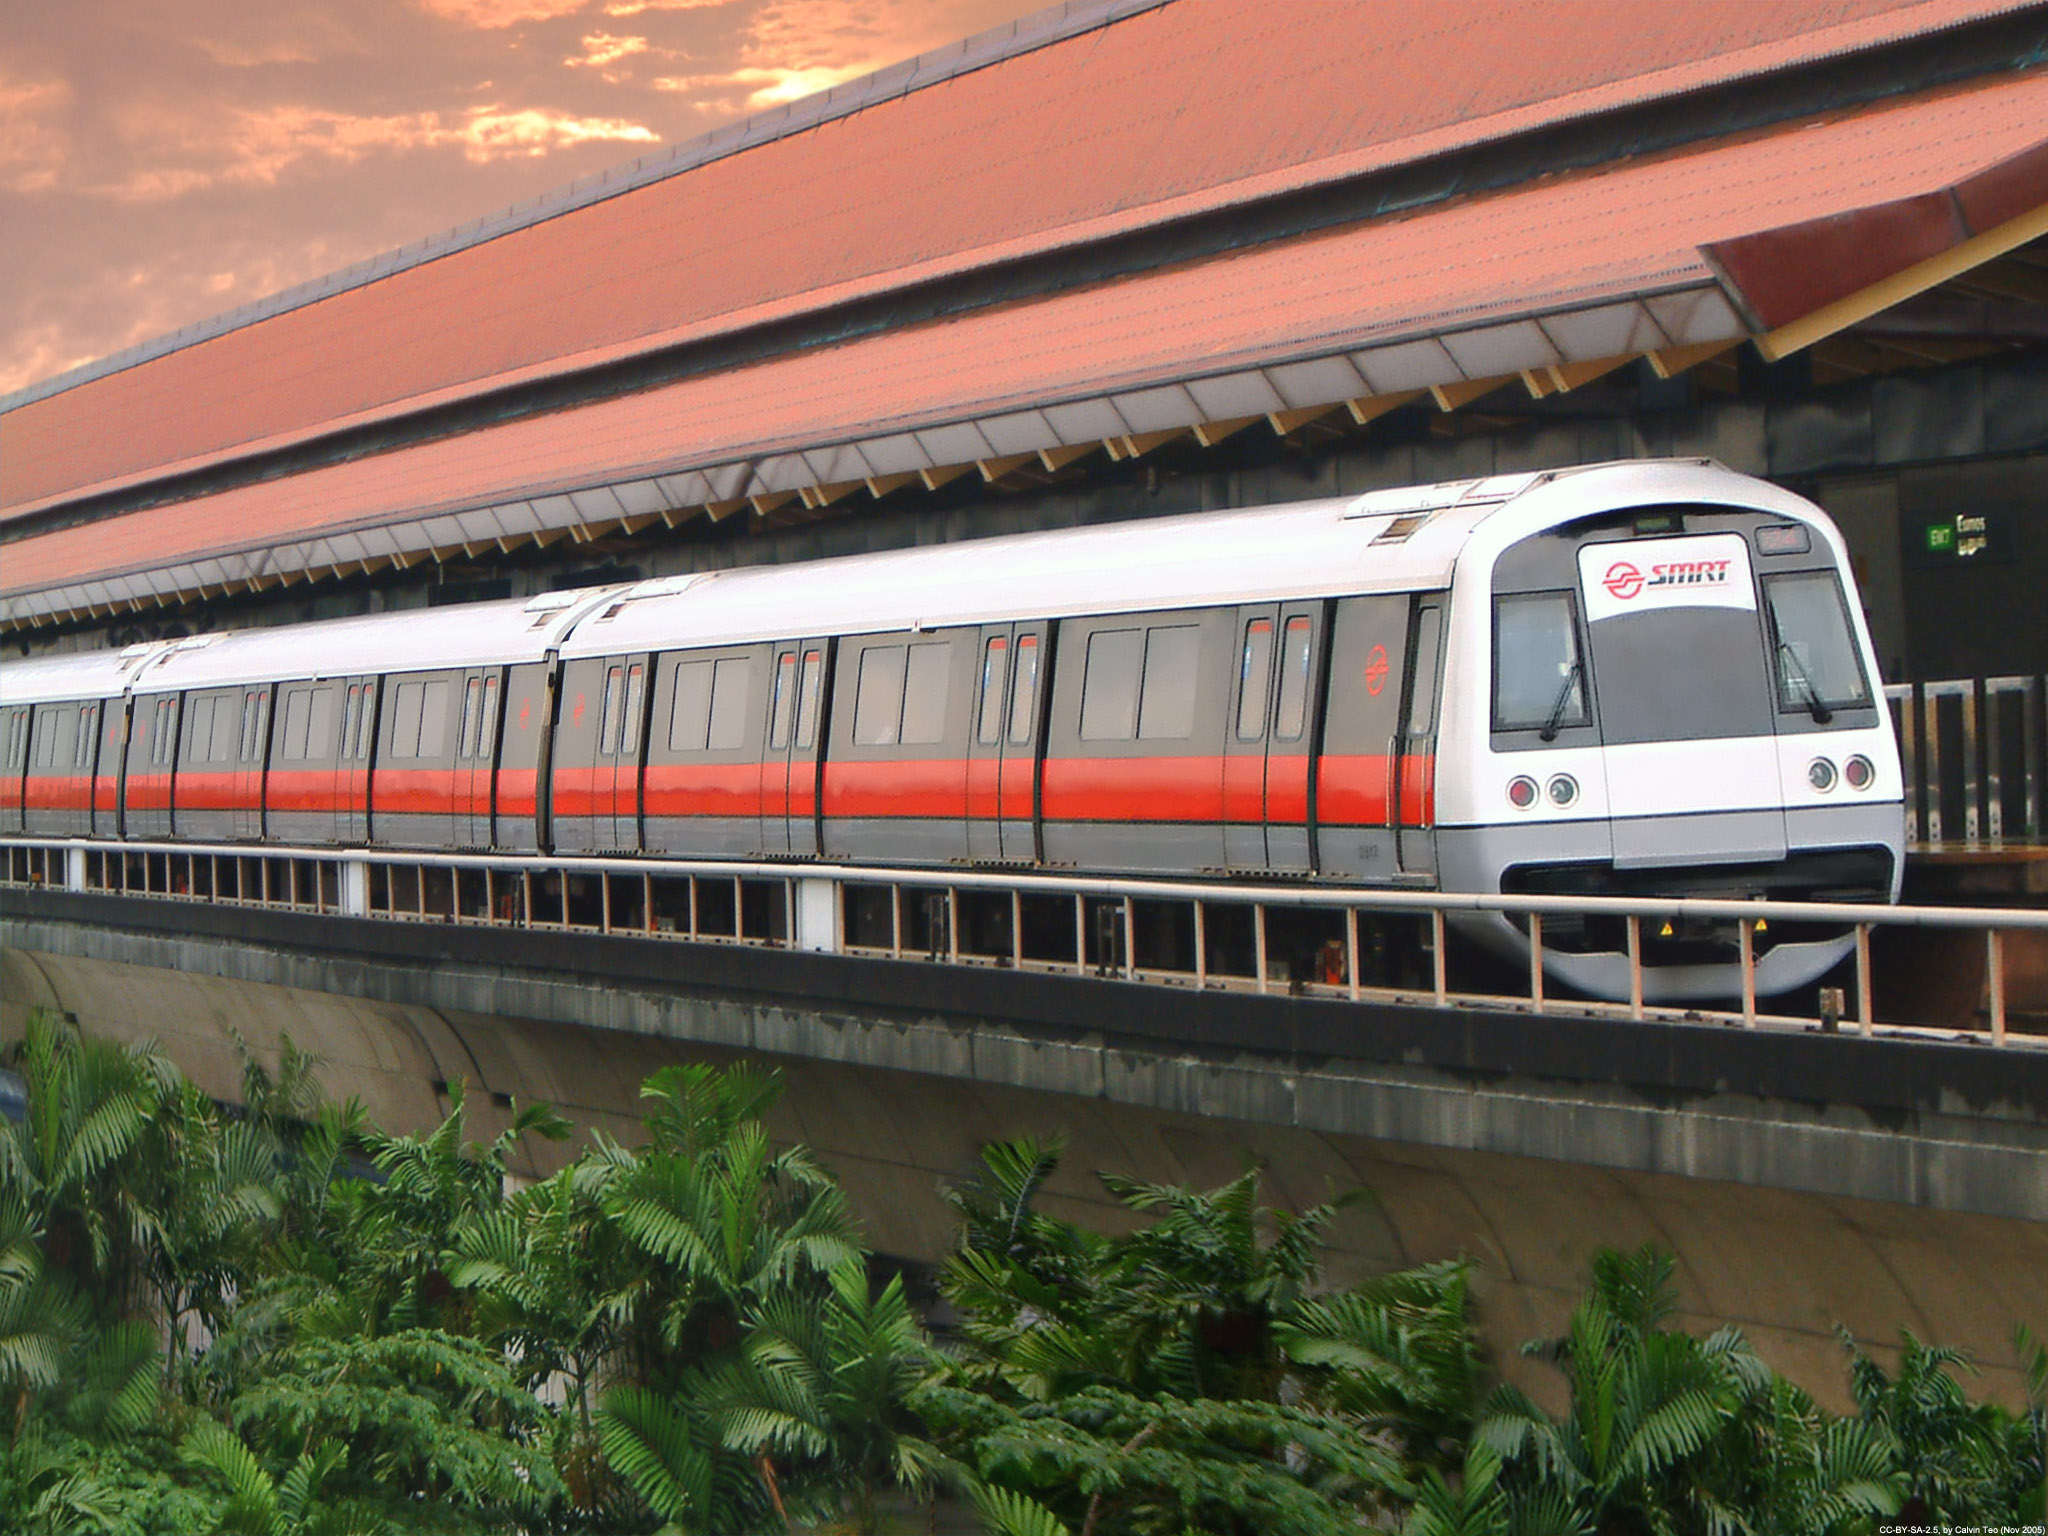 TA and SMRT will conduct trials of the new Communications-Based Train Control (CBTC) signalling system on the East-West Line (EWL) on five Sundays starting from April 29 to May 27. Photo courtesy: Wikimedia